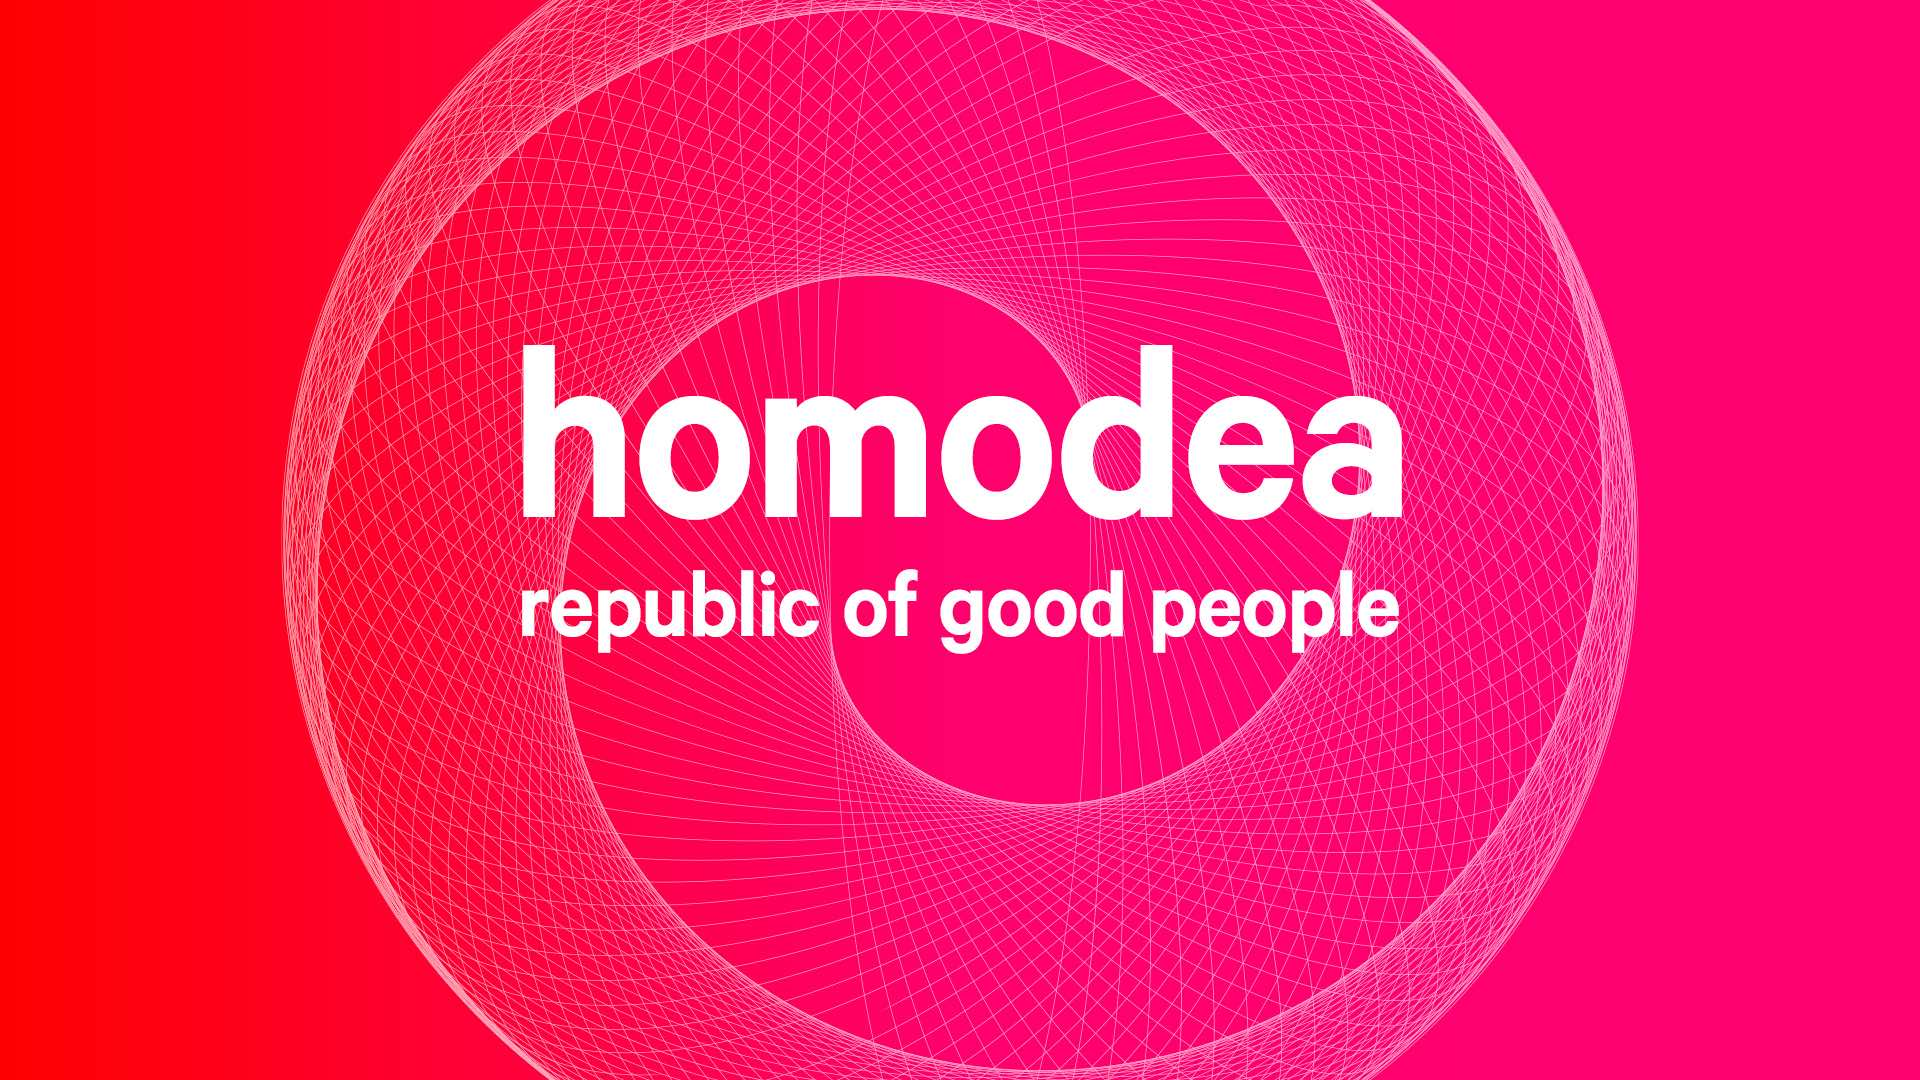 homodea | republic of good people